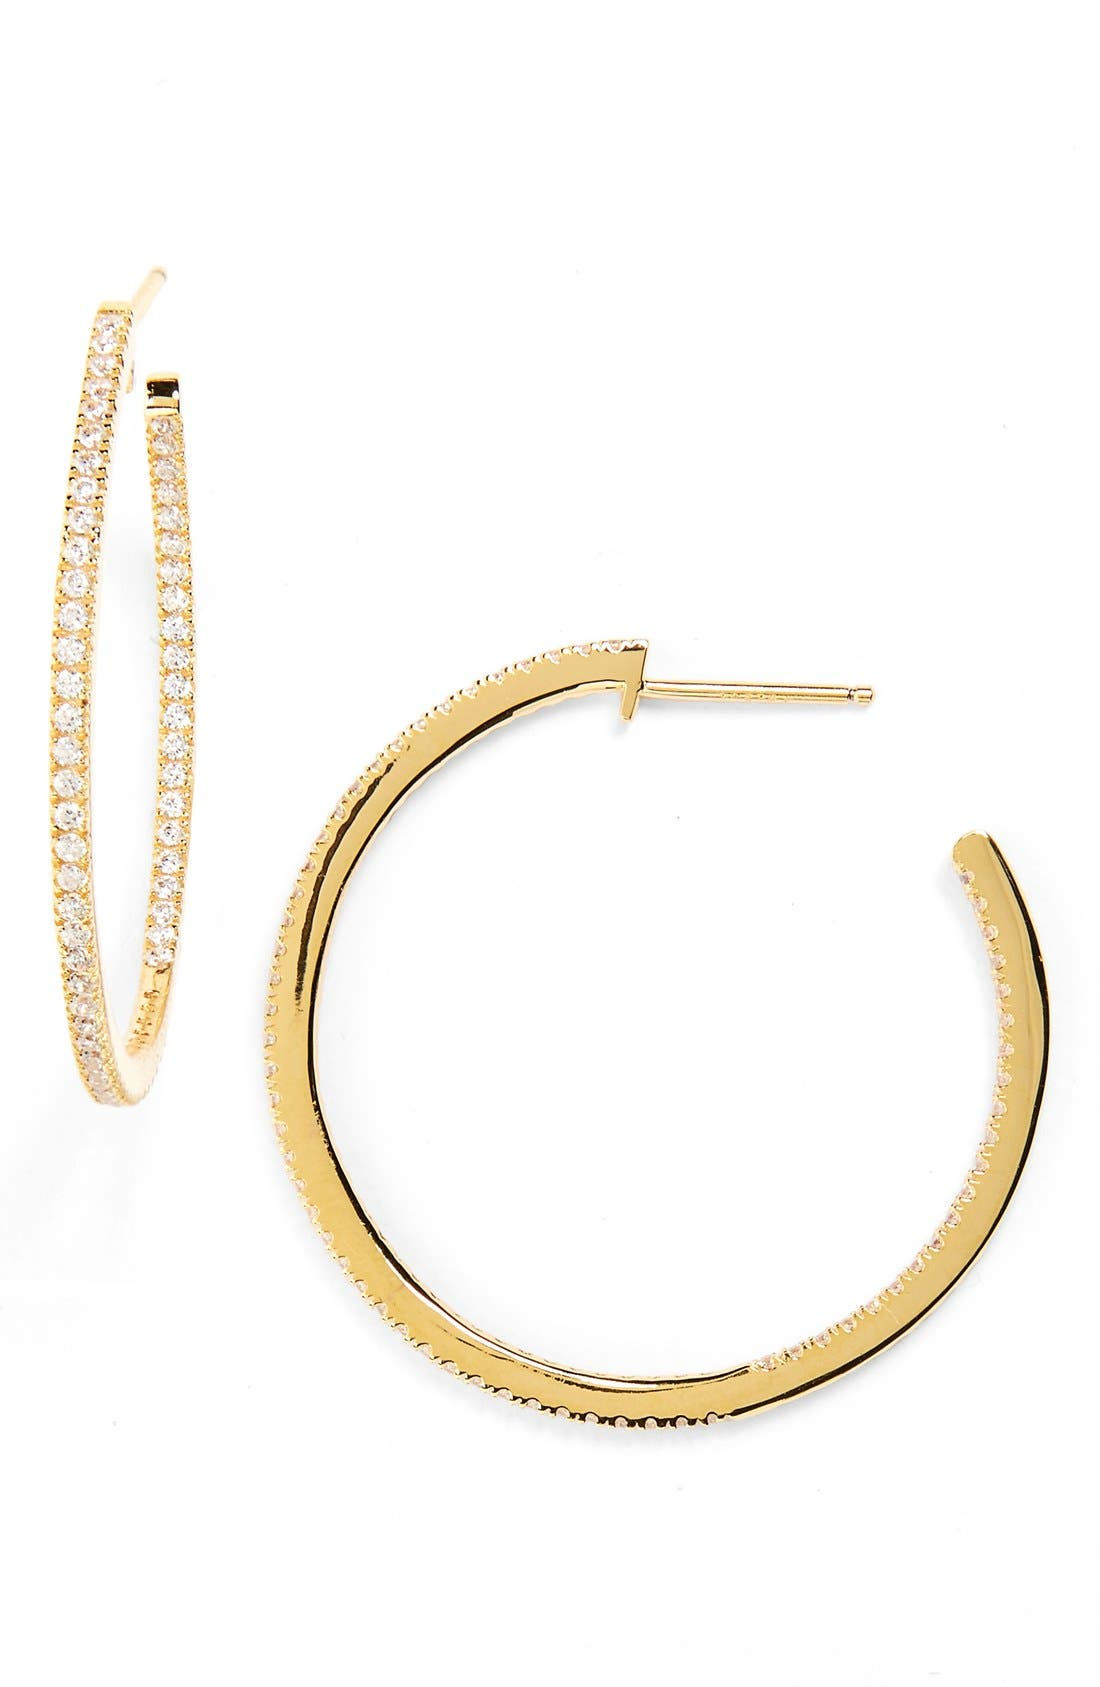 Inside Out Hoop Earrings,                             Main thumbnail 1, color,                             CLEAR- GOLD